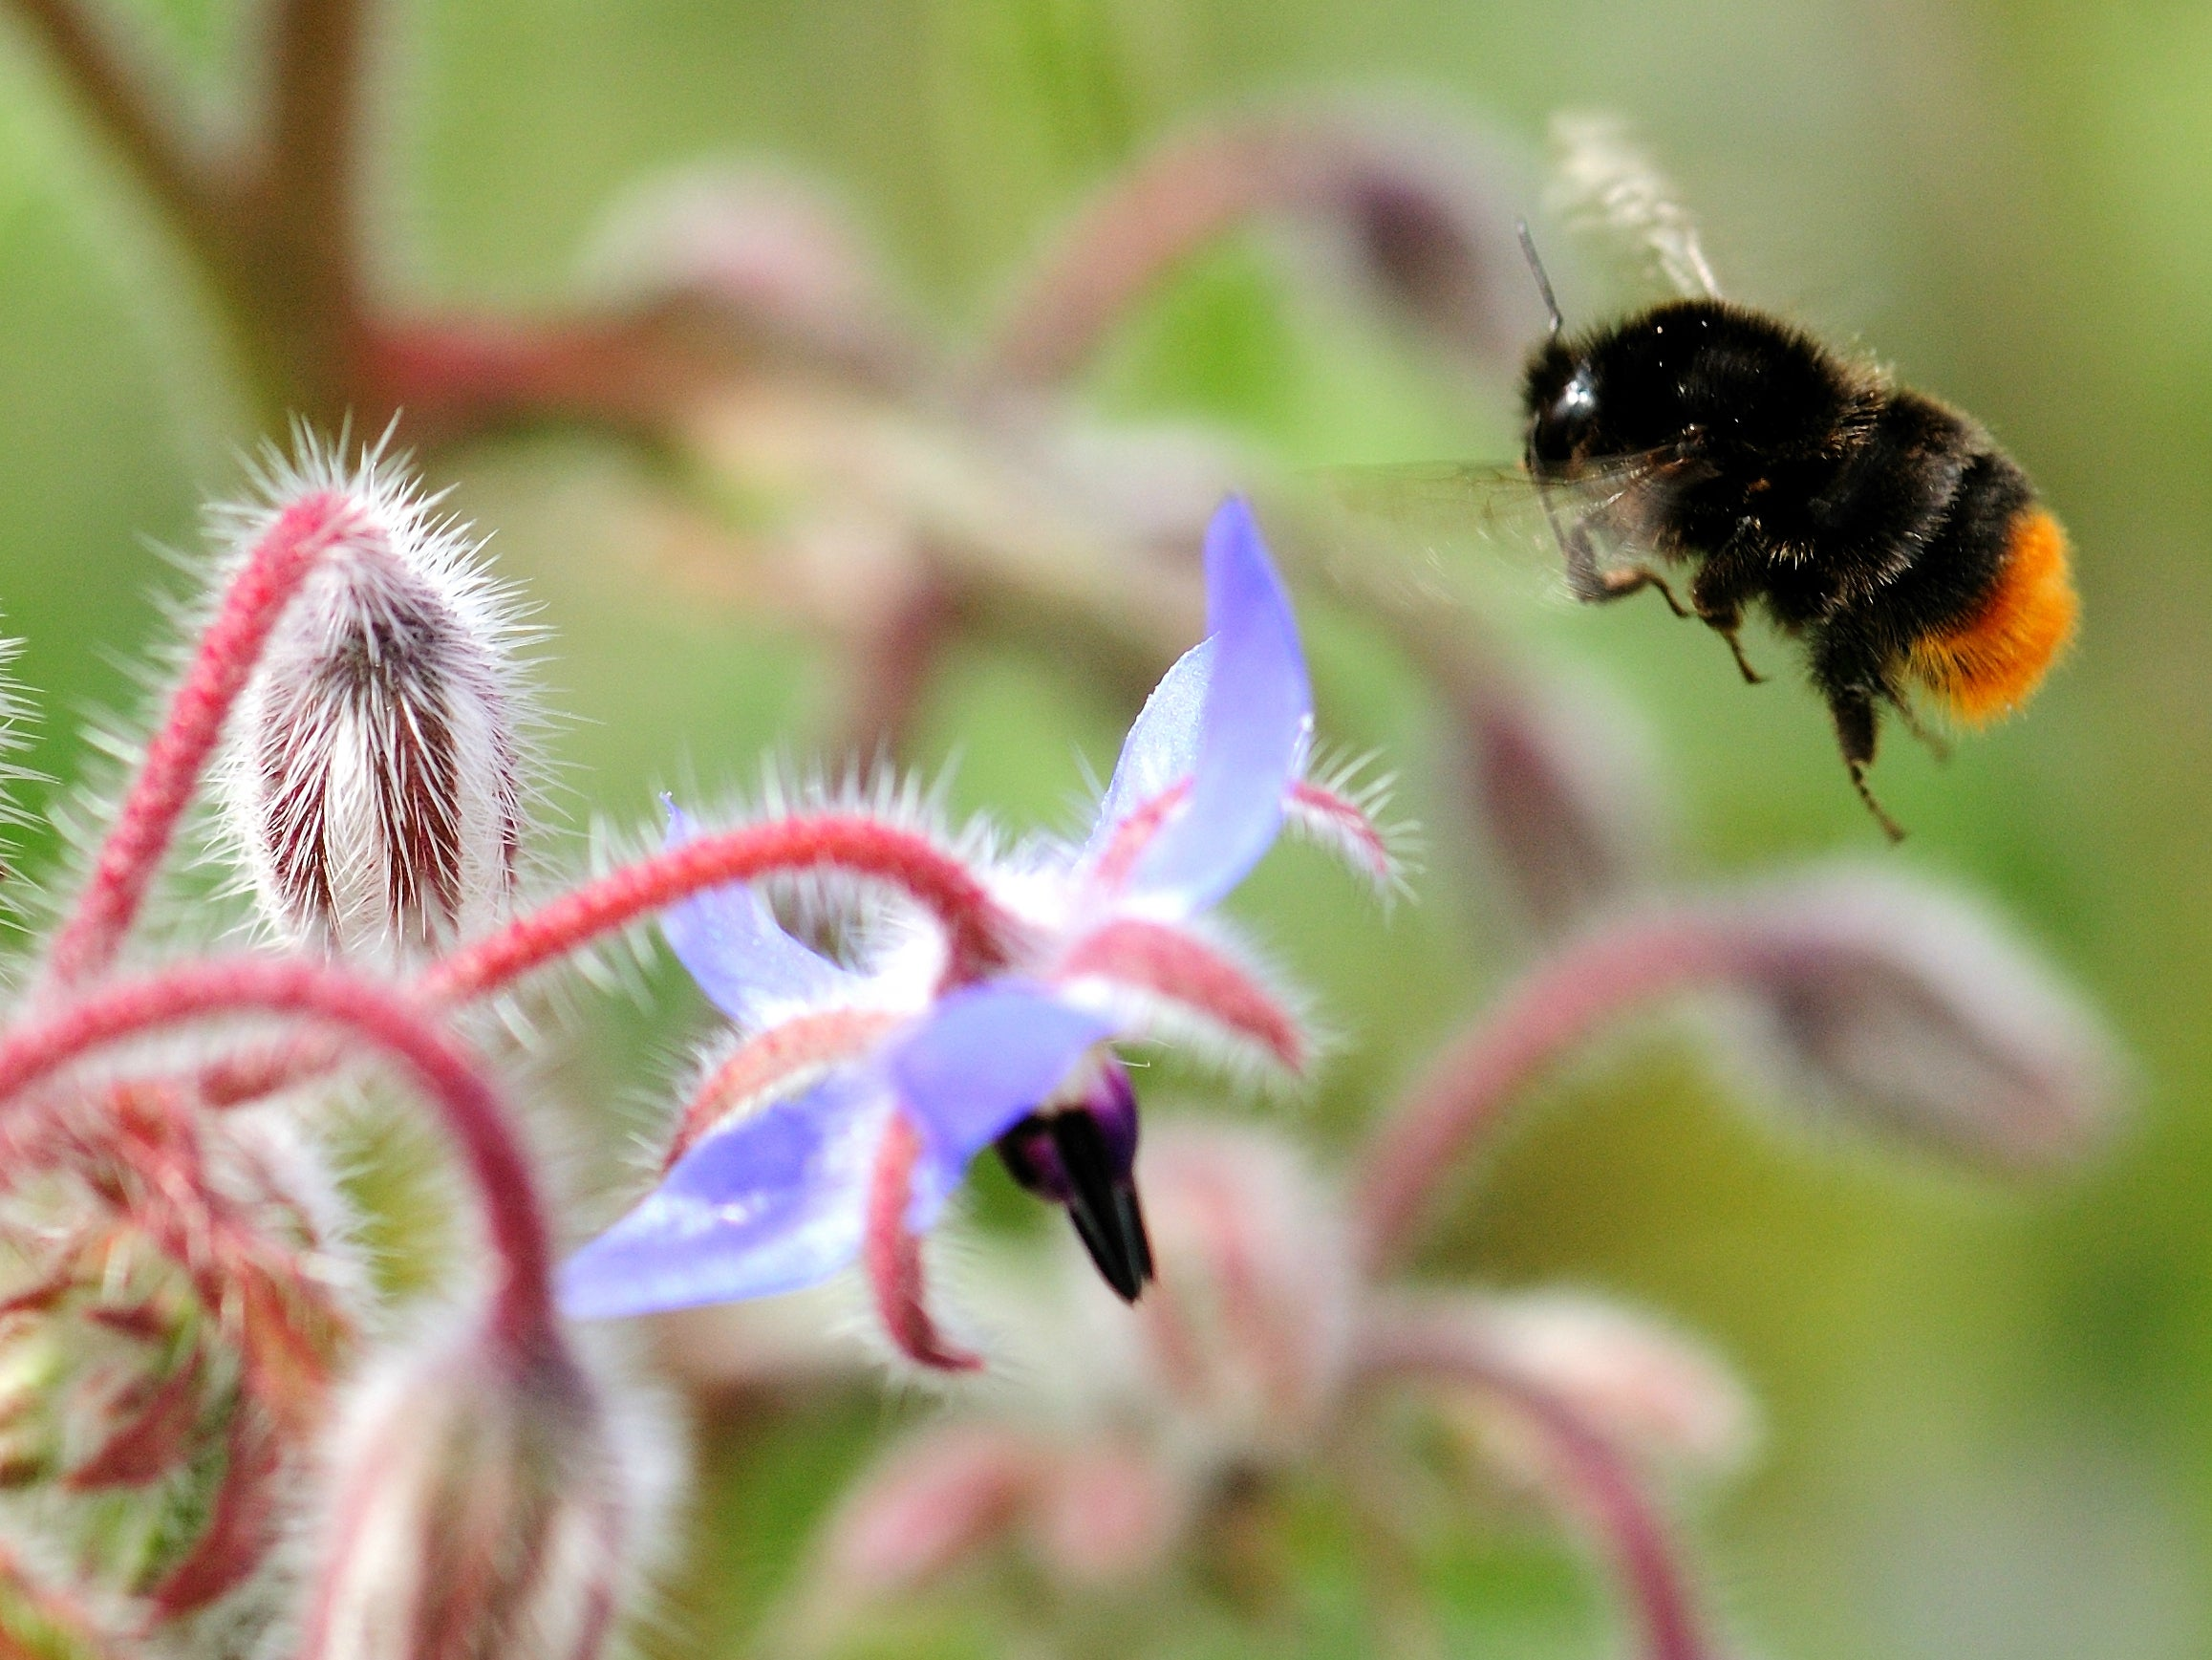 You really can help save bees by planting wildflowers